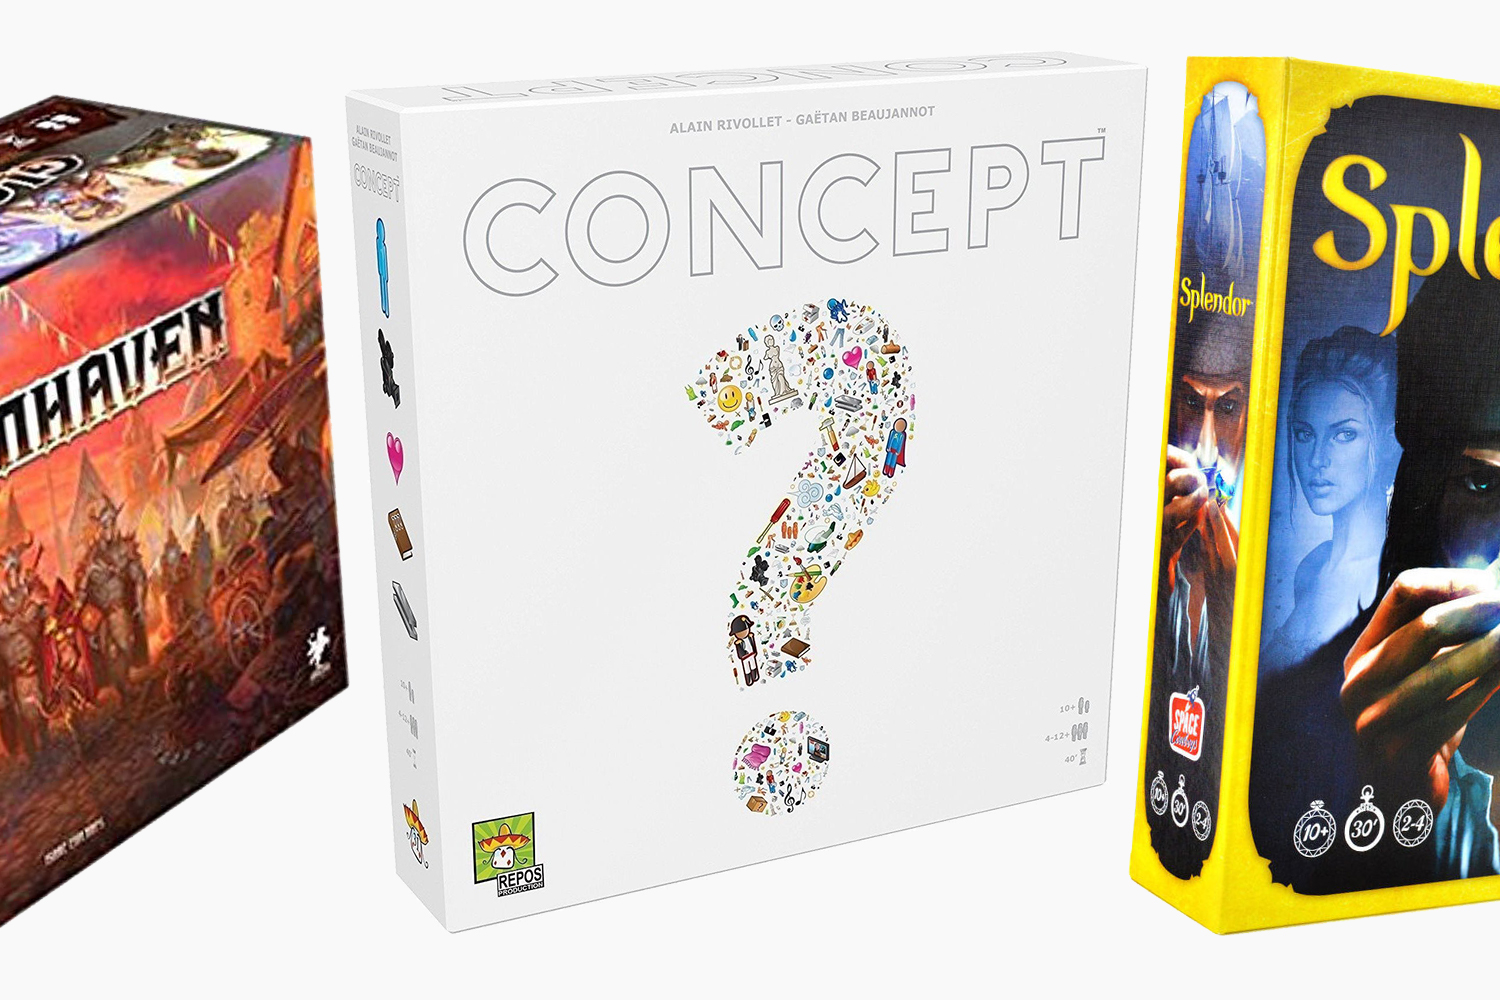 The six best board games from Amazon's one-day sale.